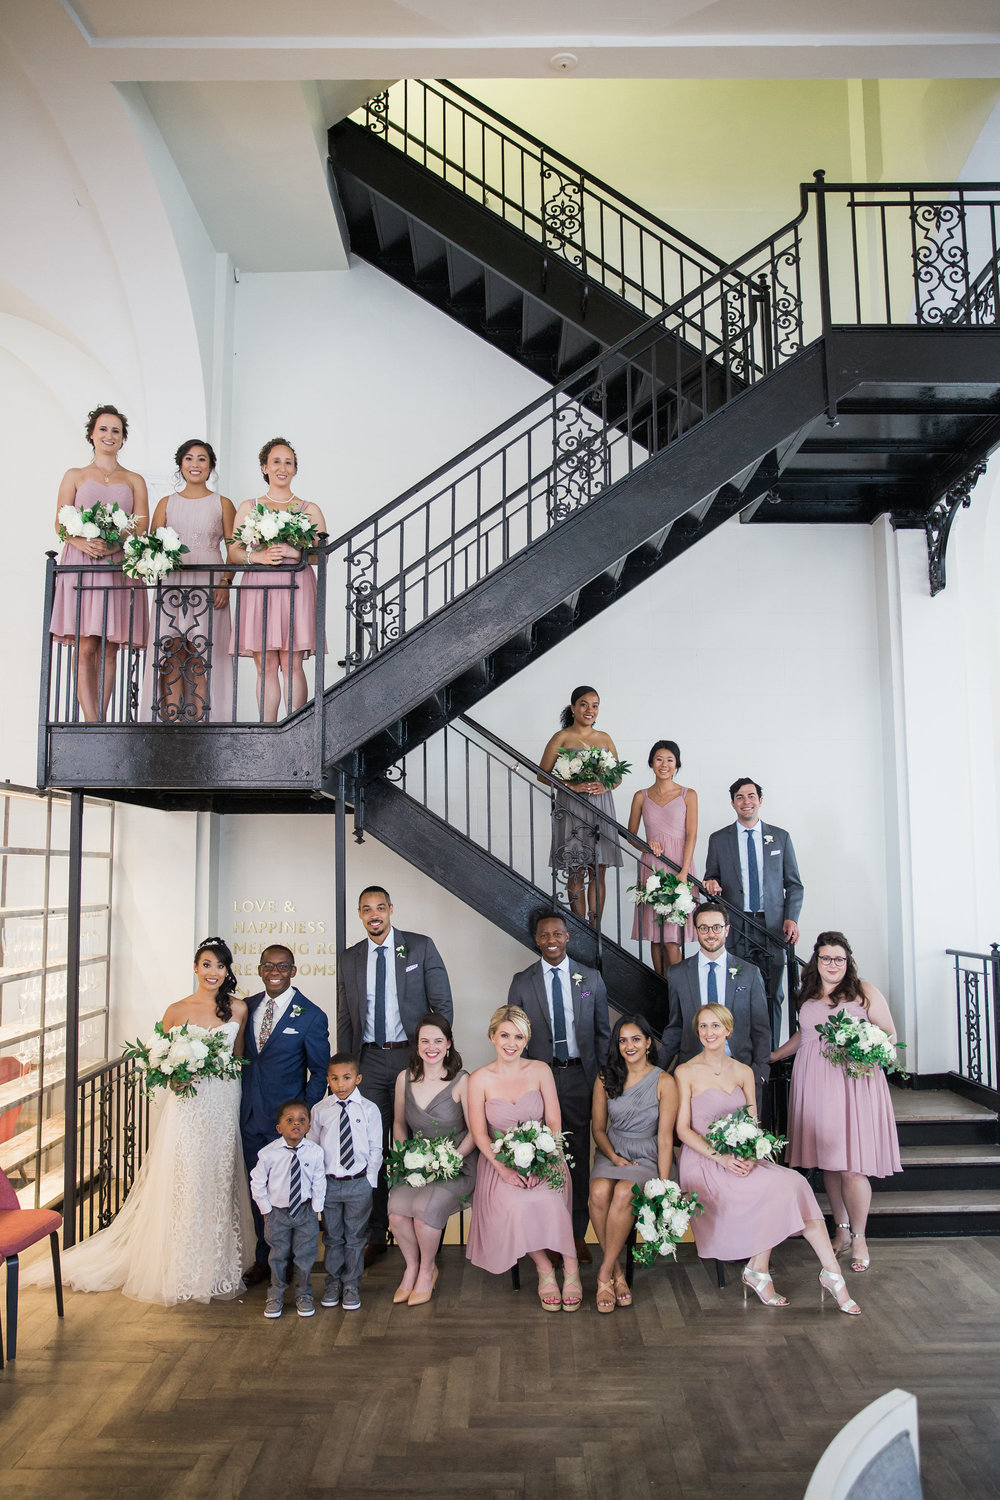 MY WEDDING WAS PERFECT IN EVERY WAY THANKS TO NICA AND HER CREW! -